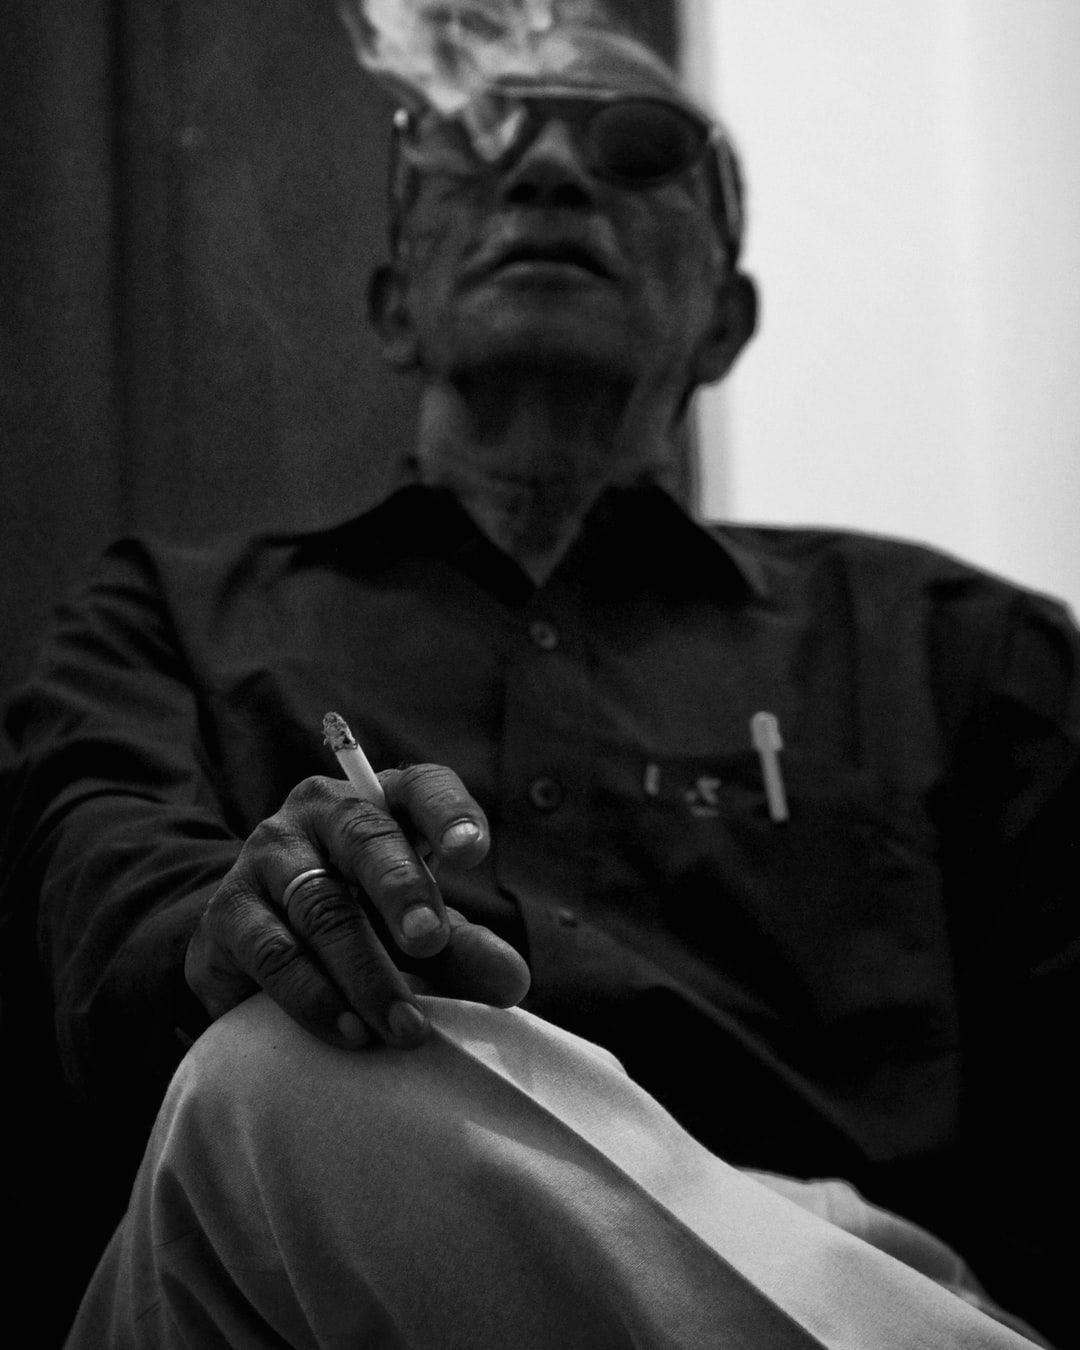 He is my grandfather. I want him to pose for my portfolio.